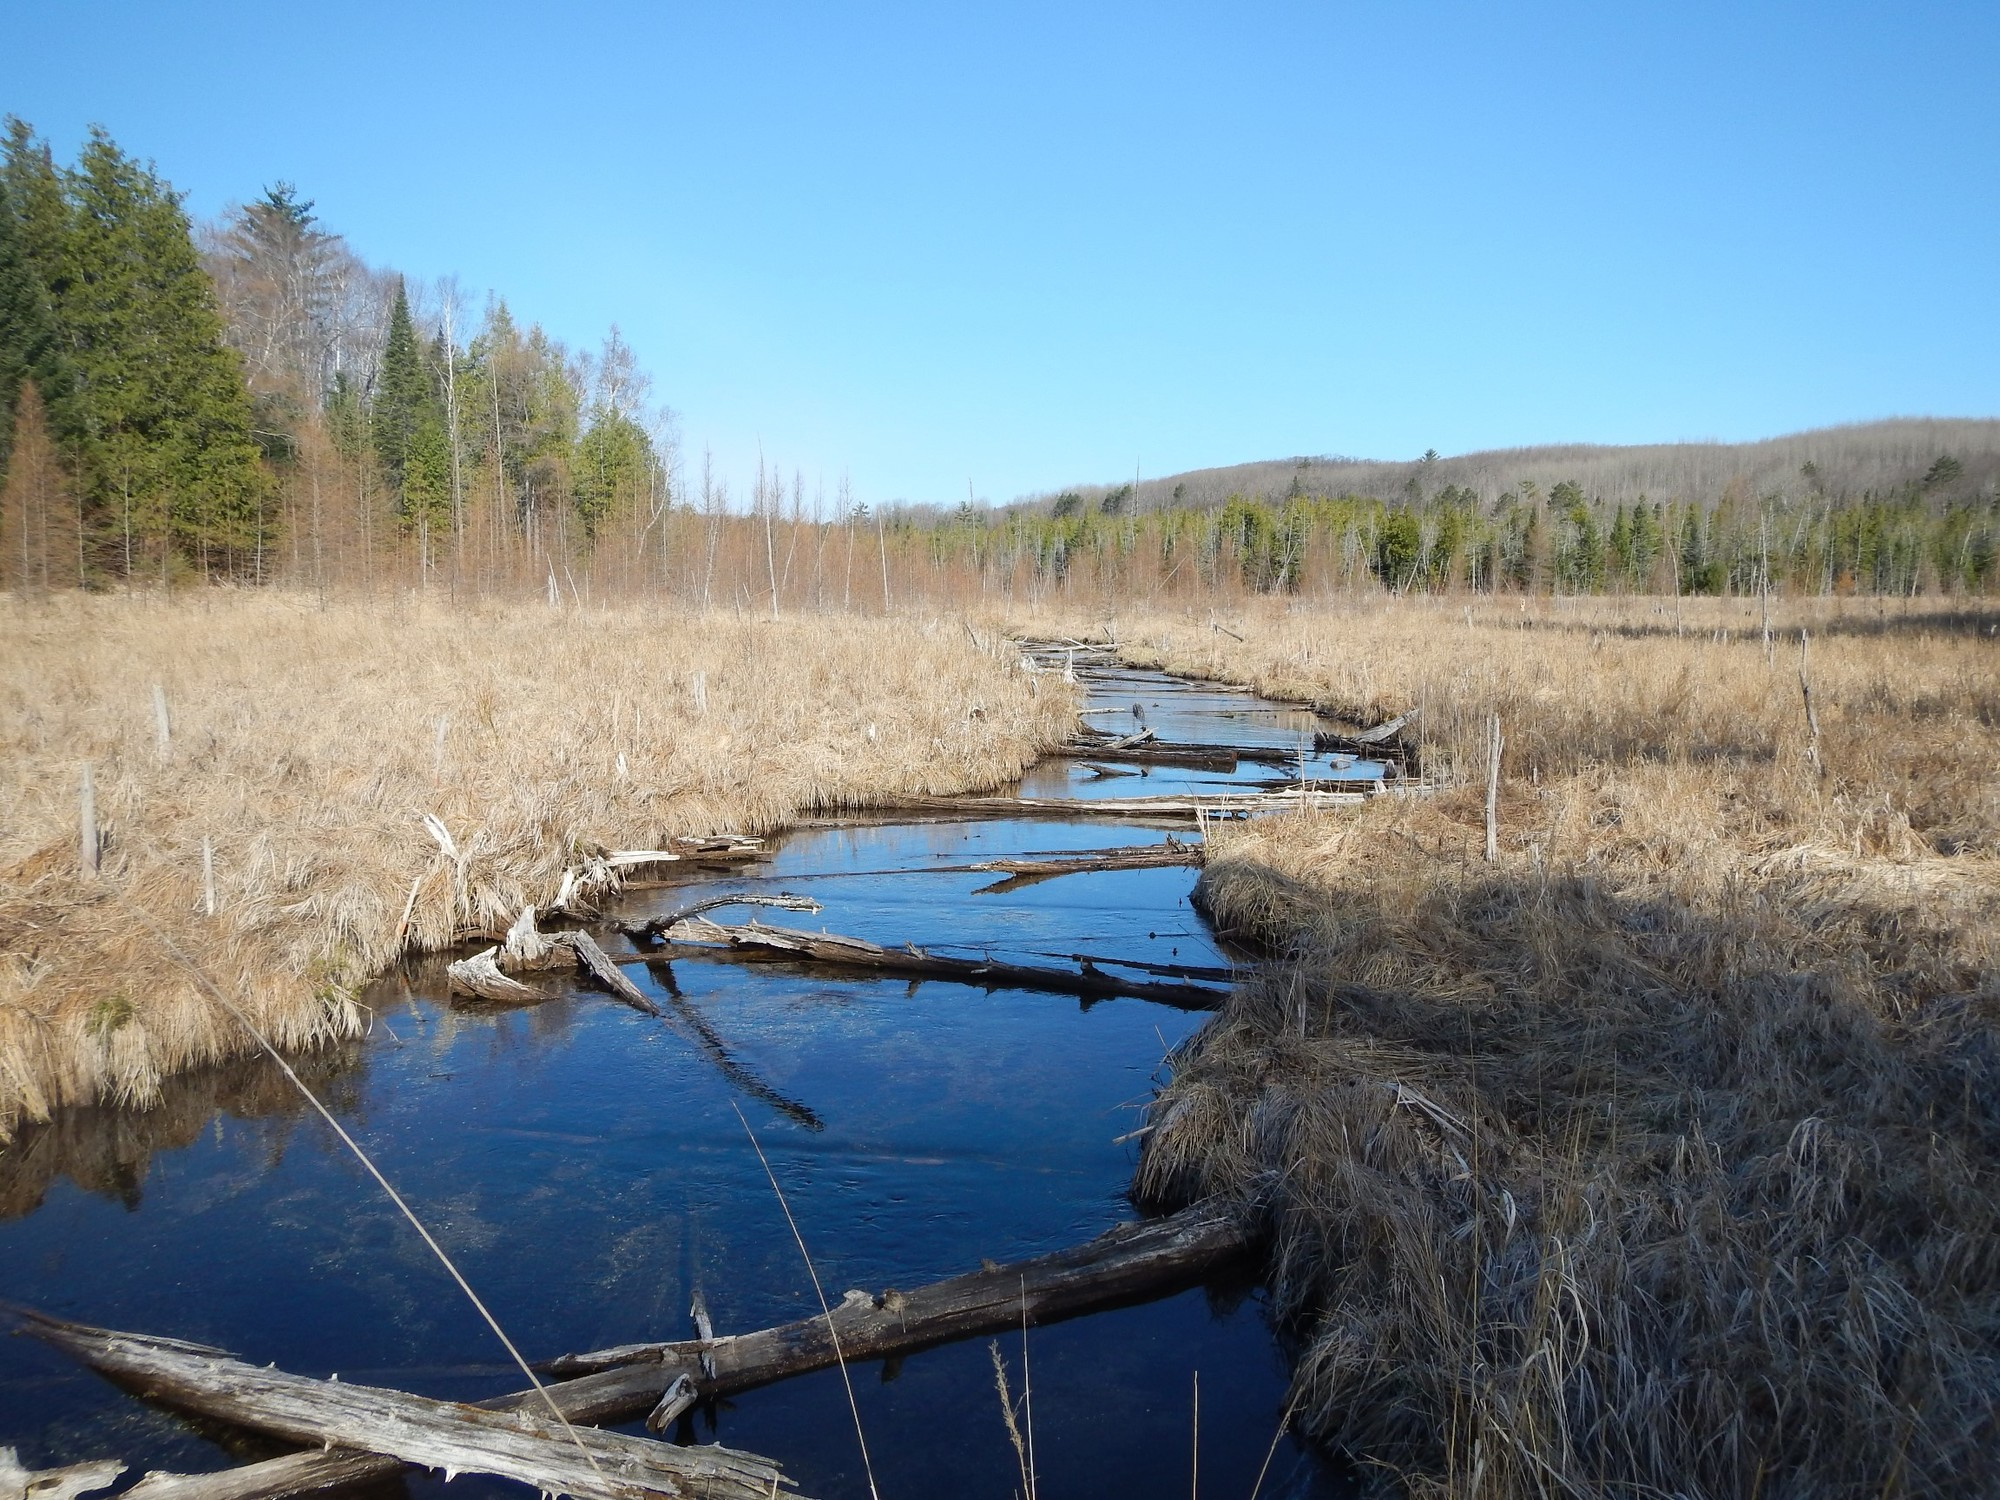 On Klacking Creek in Ogemaw County there is a vast floodplain. As soon as flows get much higher than bankfull here, energy is quickly dissipated.